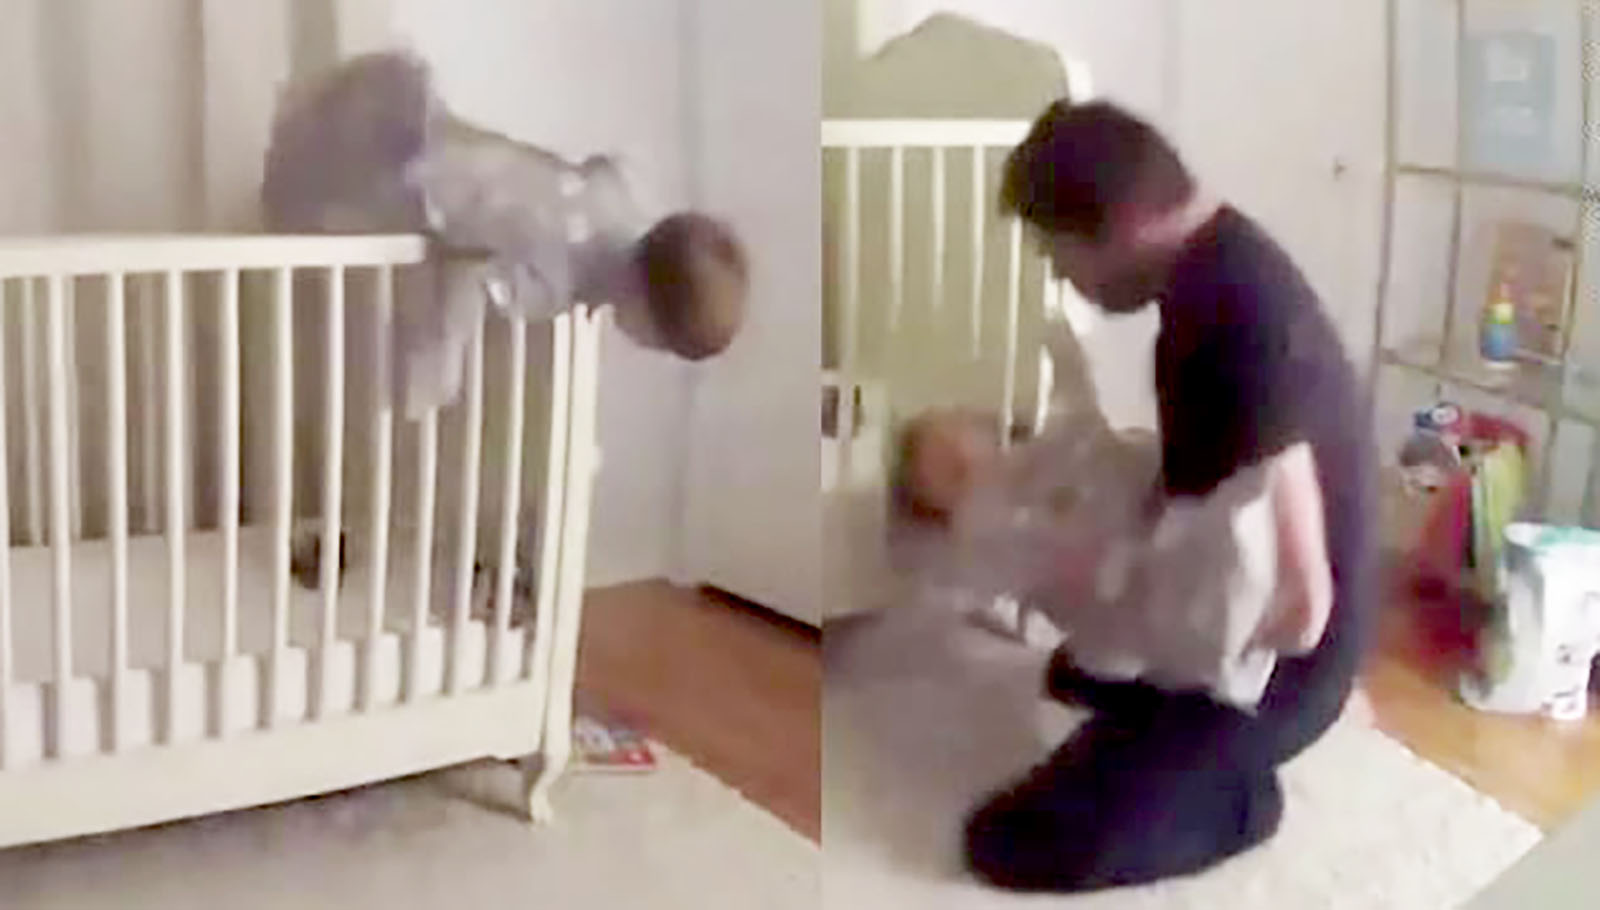 See Dad S Amazing Catch Of Falling Toddler